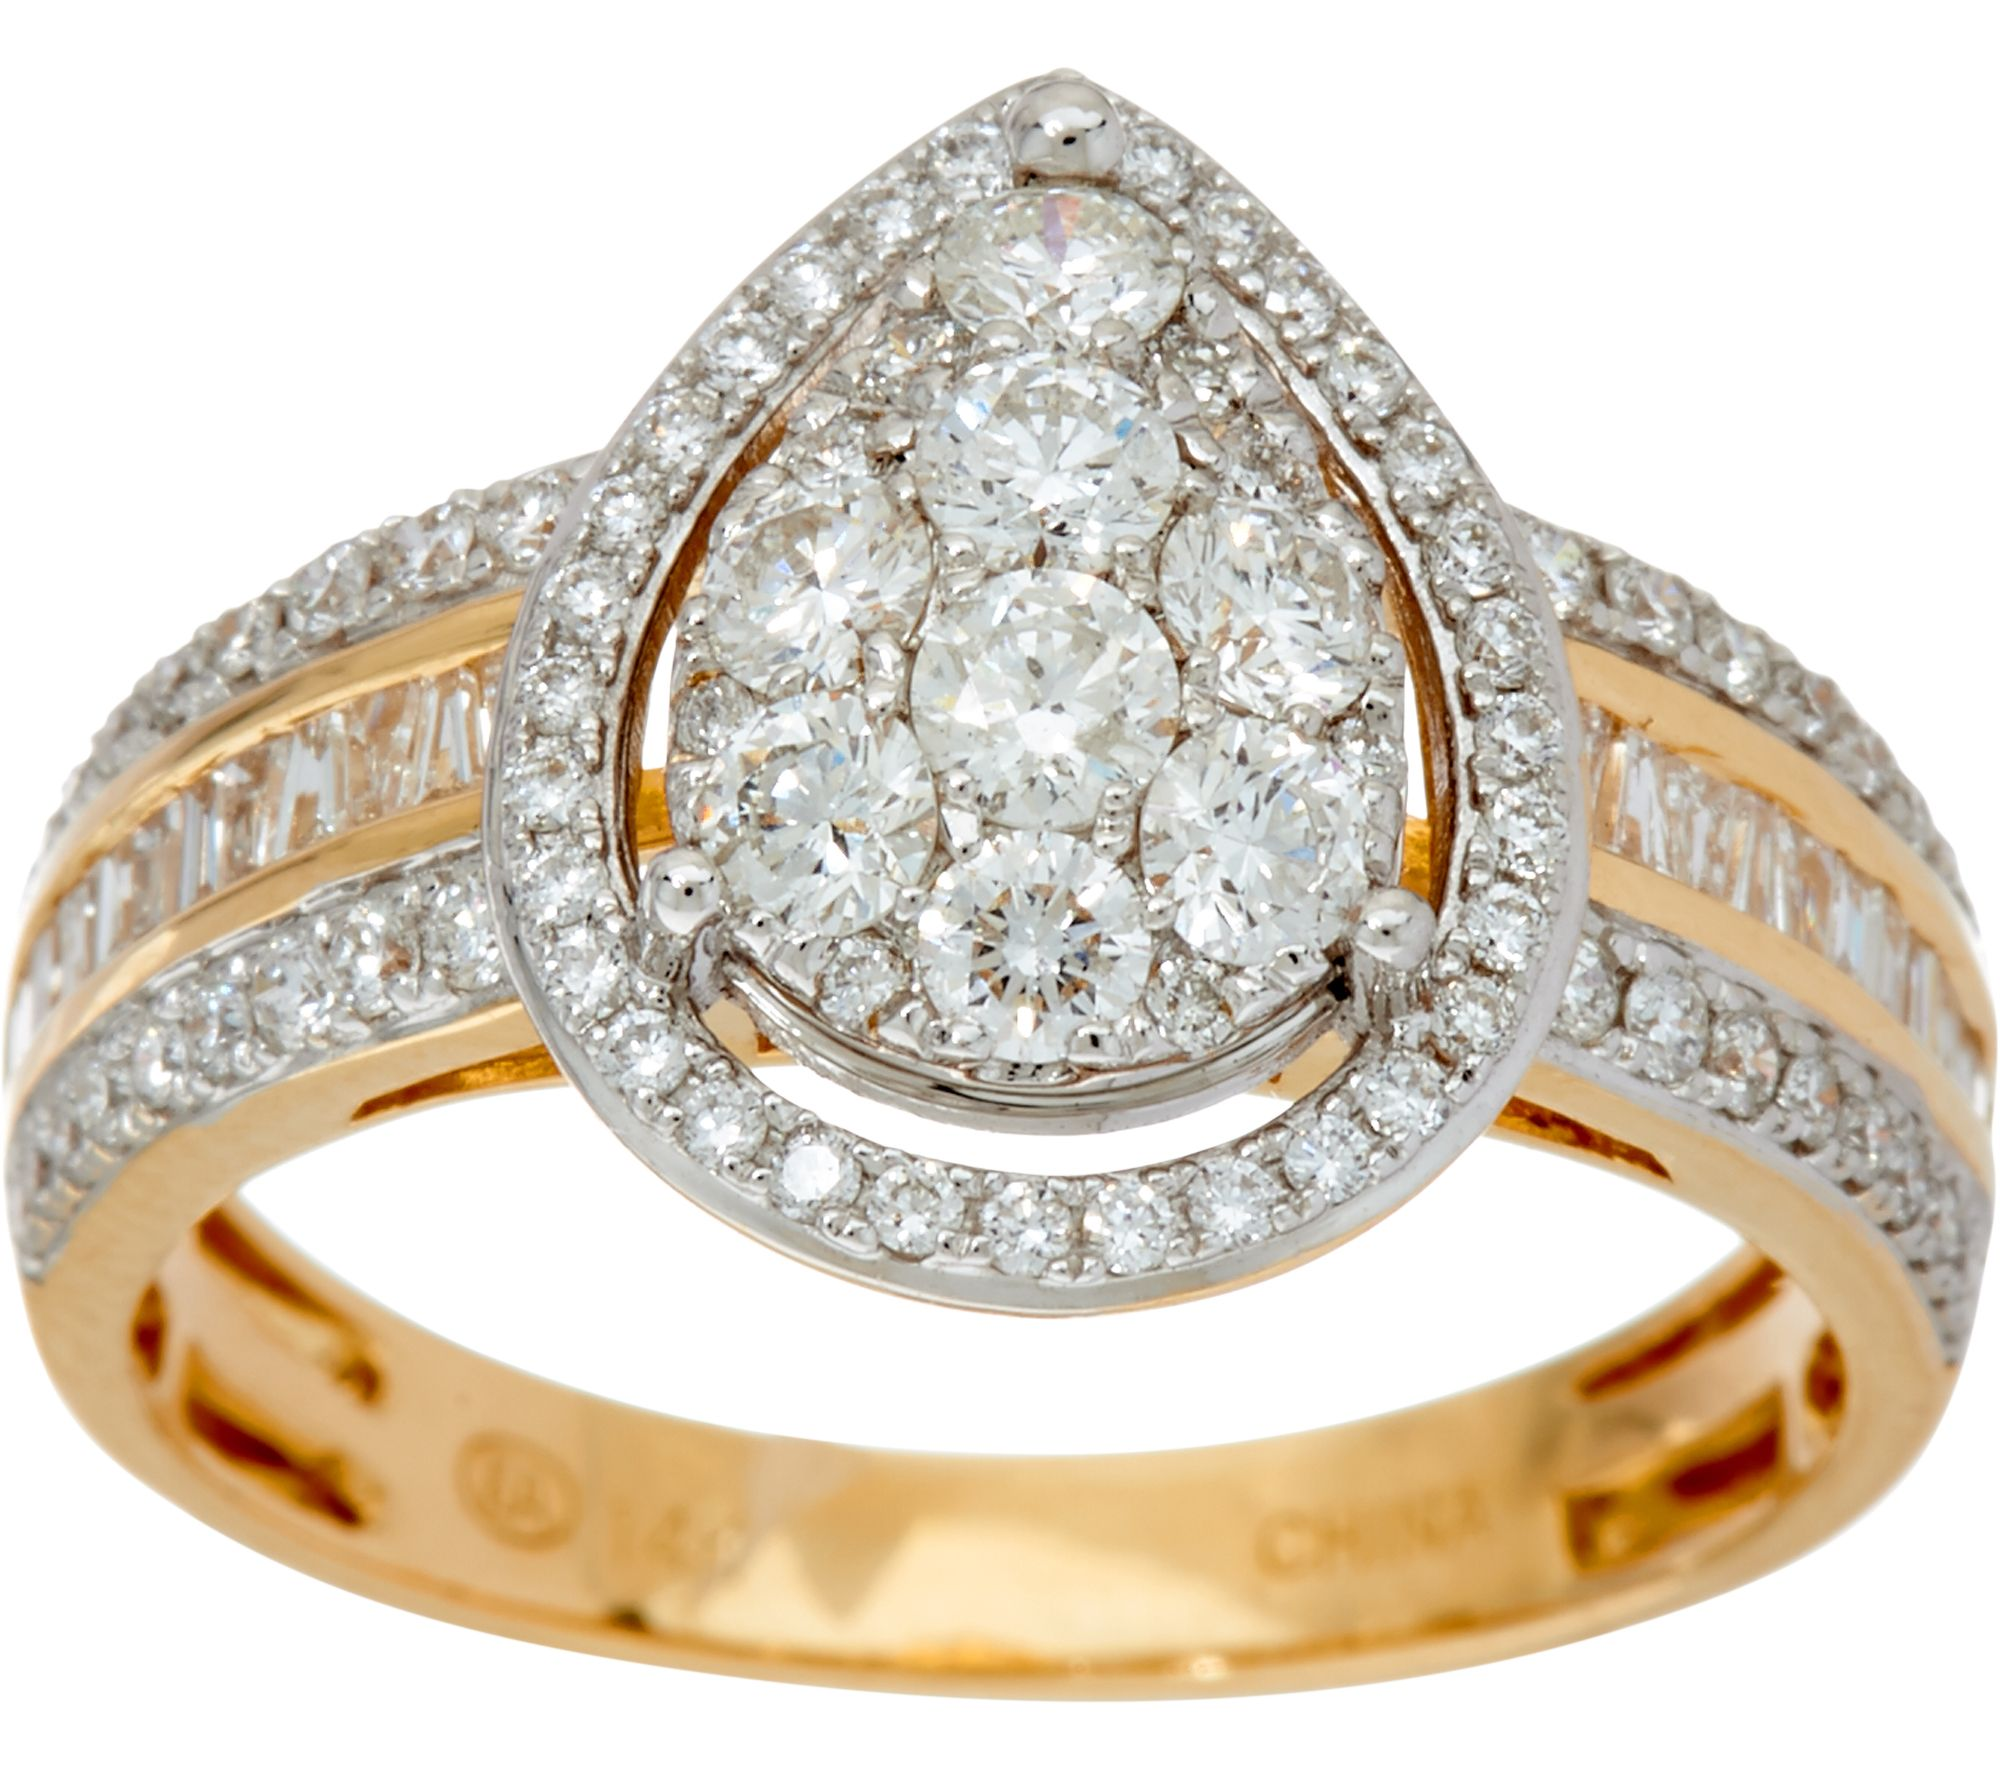 cluster a ring s jewelers mackley product wedding striking rings diamond